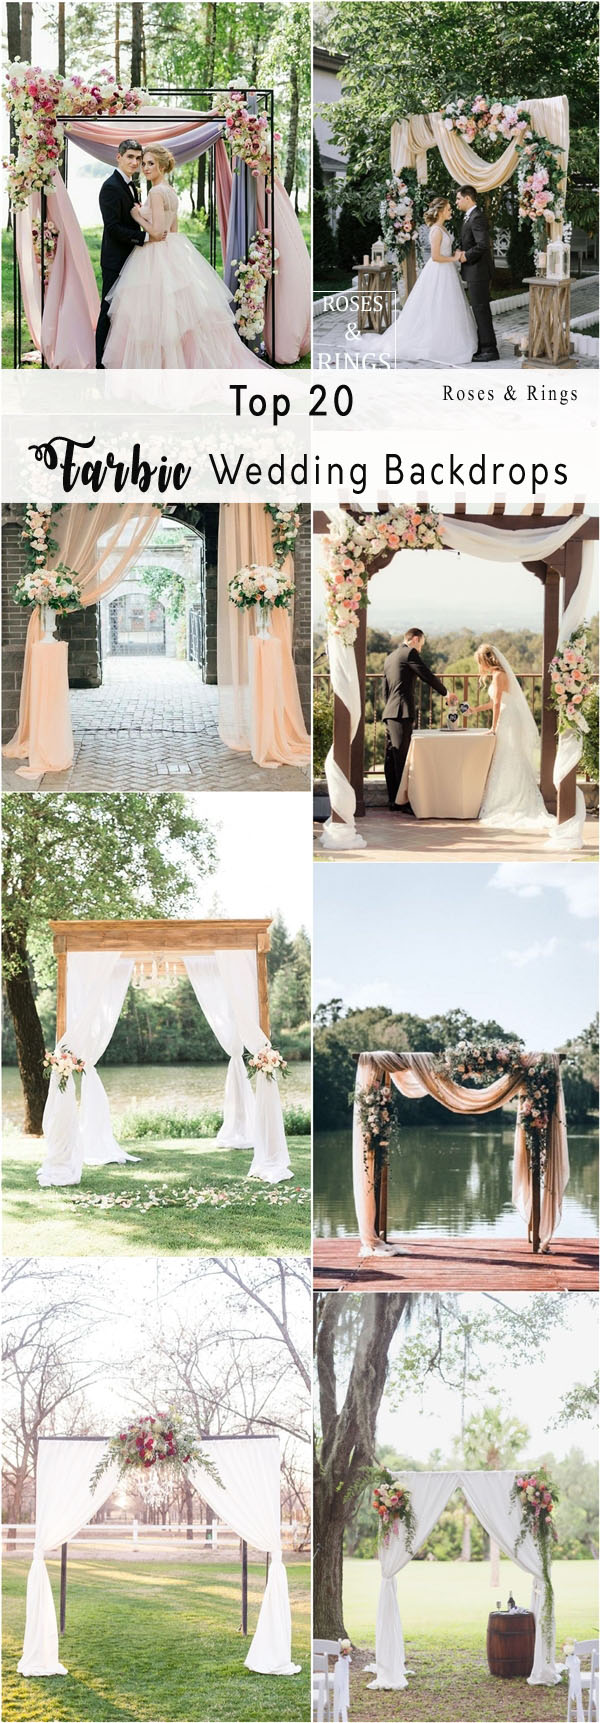 20 Best Floral and Fabric Wedding Arches on Pinterest   Roses & Rings